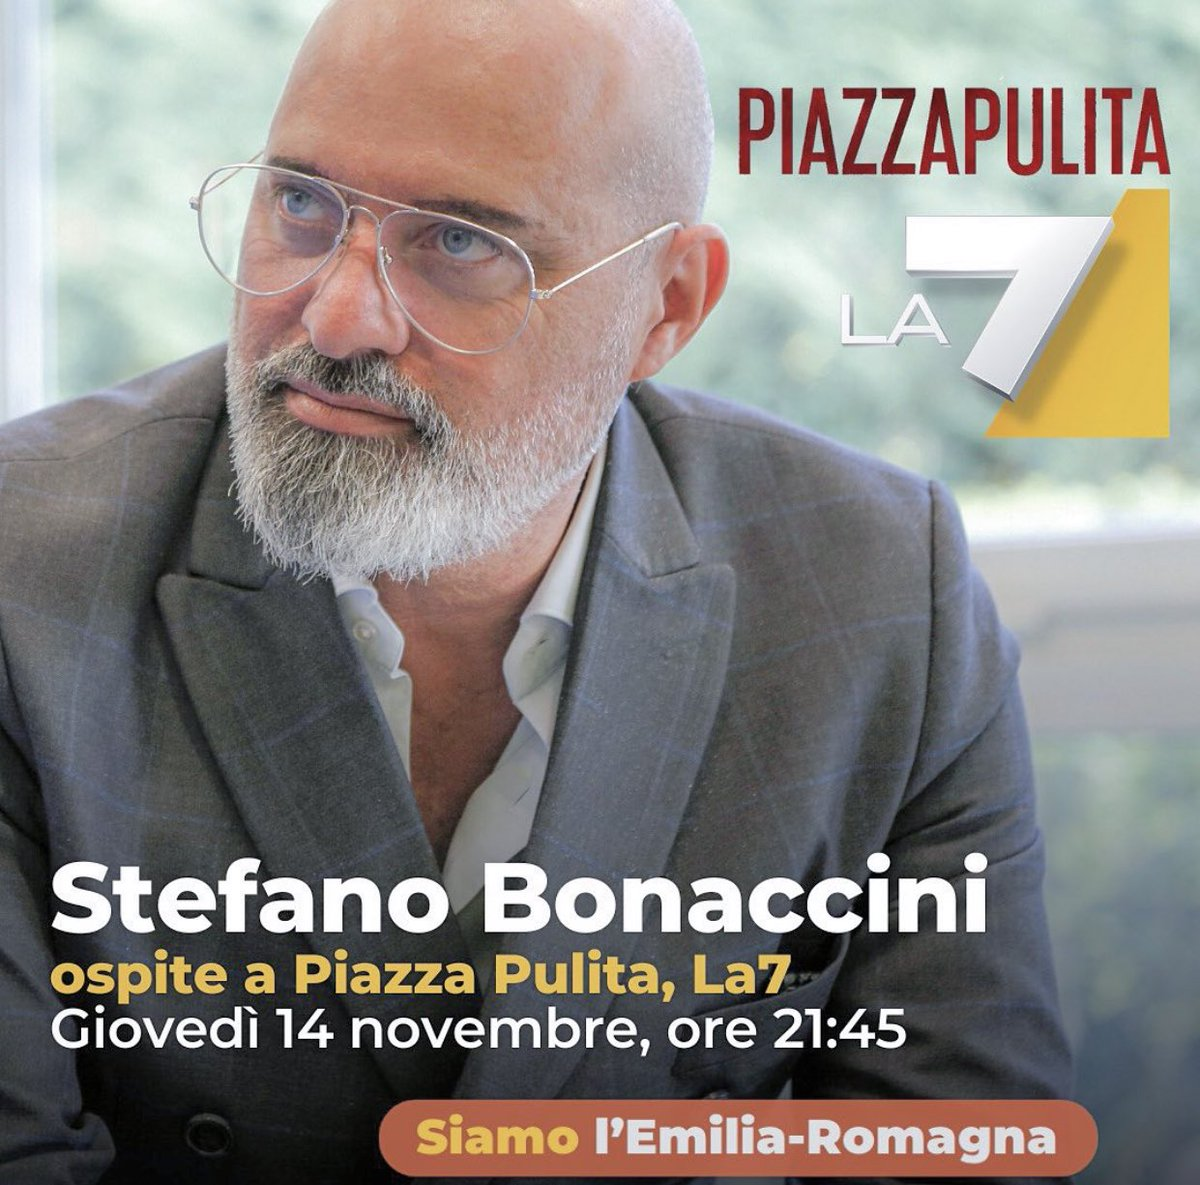 bonaccini - photo #22